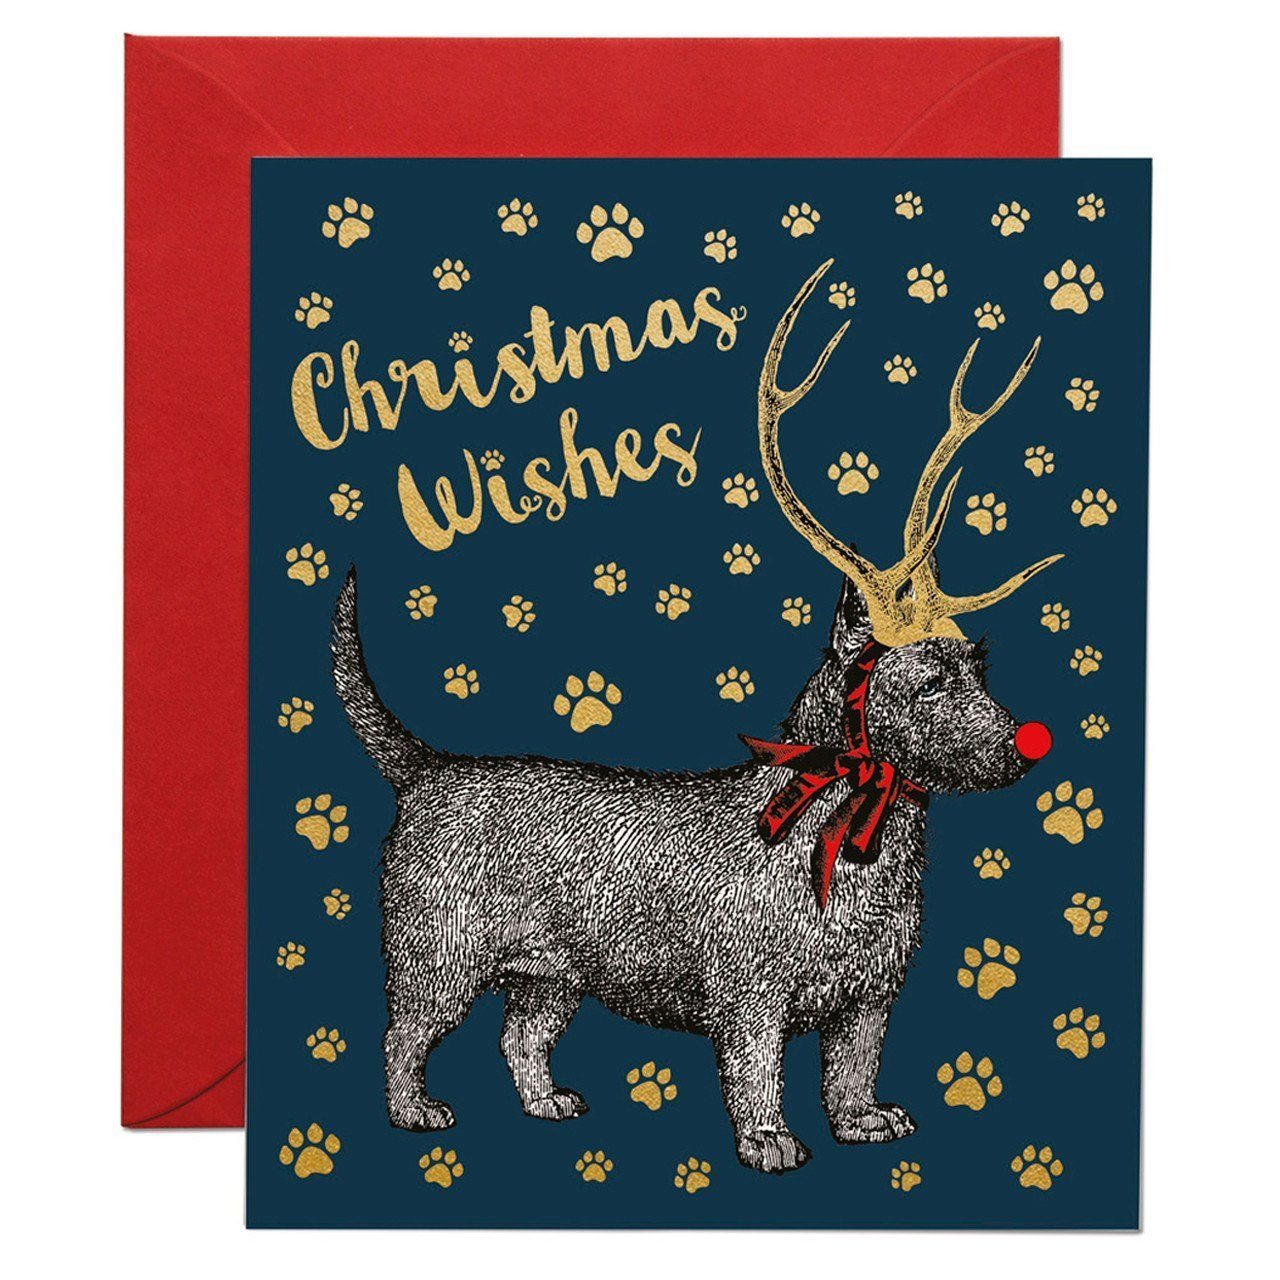 Christmas Dog with Antlers greeting card - Chase and Wonder - Proudly Made in Britain